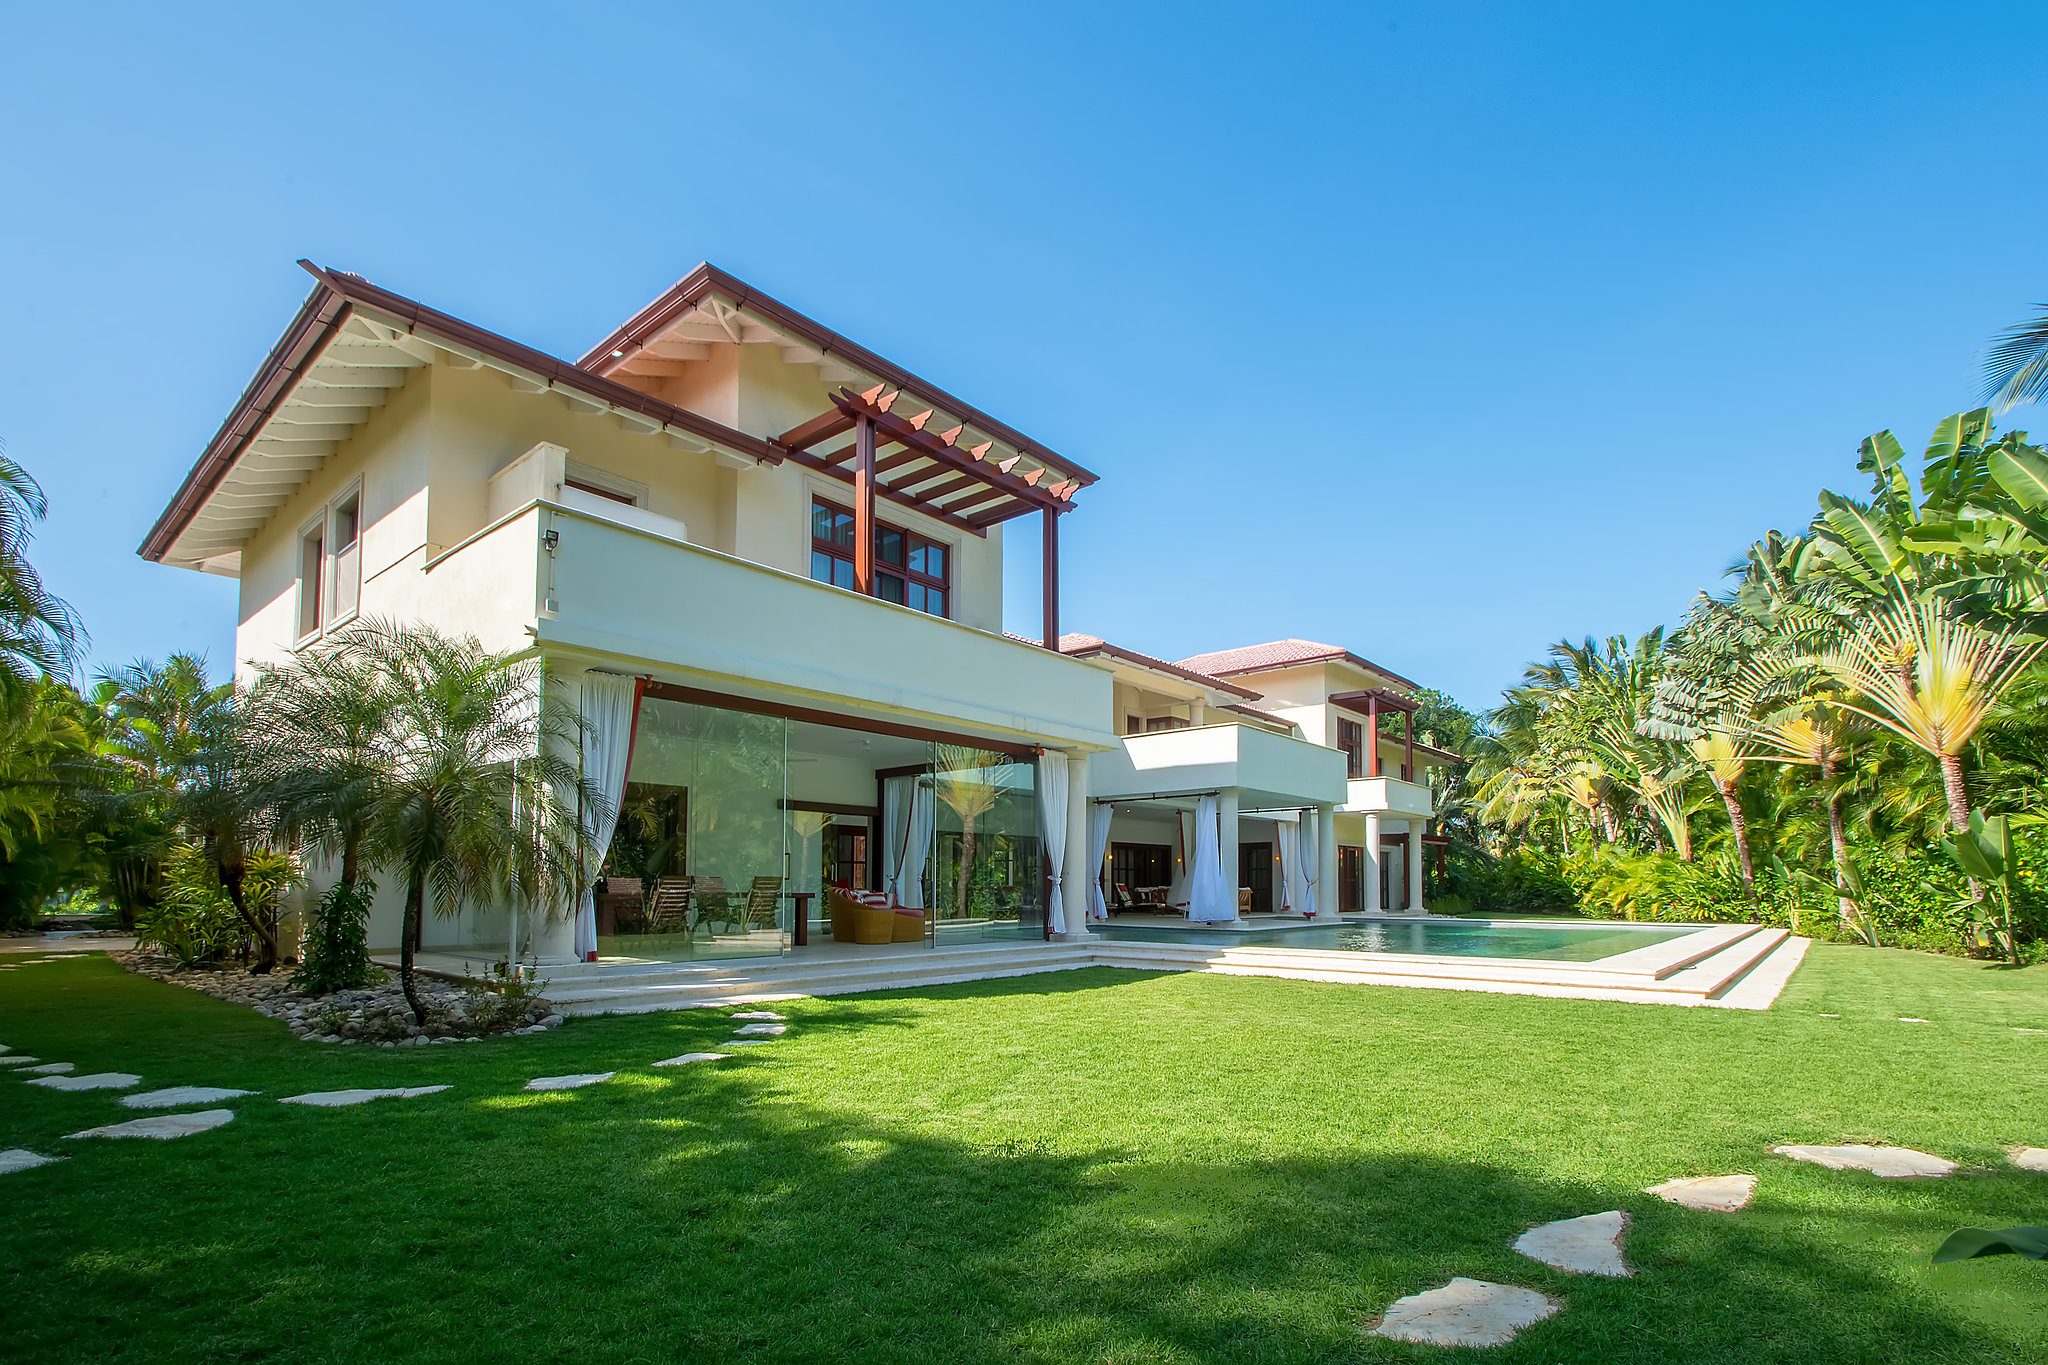 Property Closing Costs in the Dominican Republic